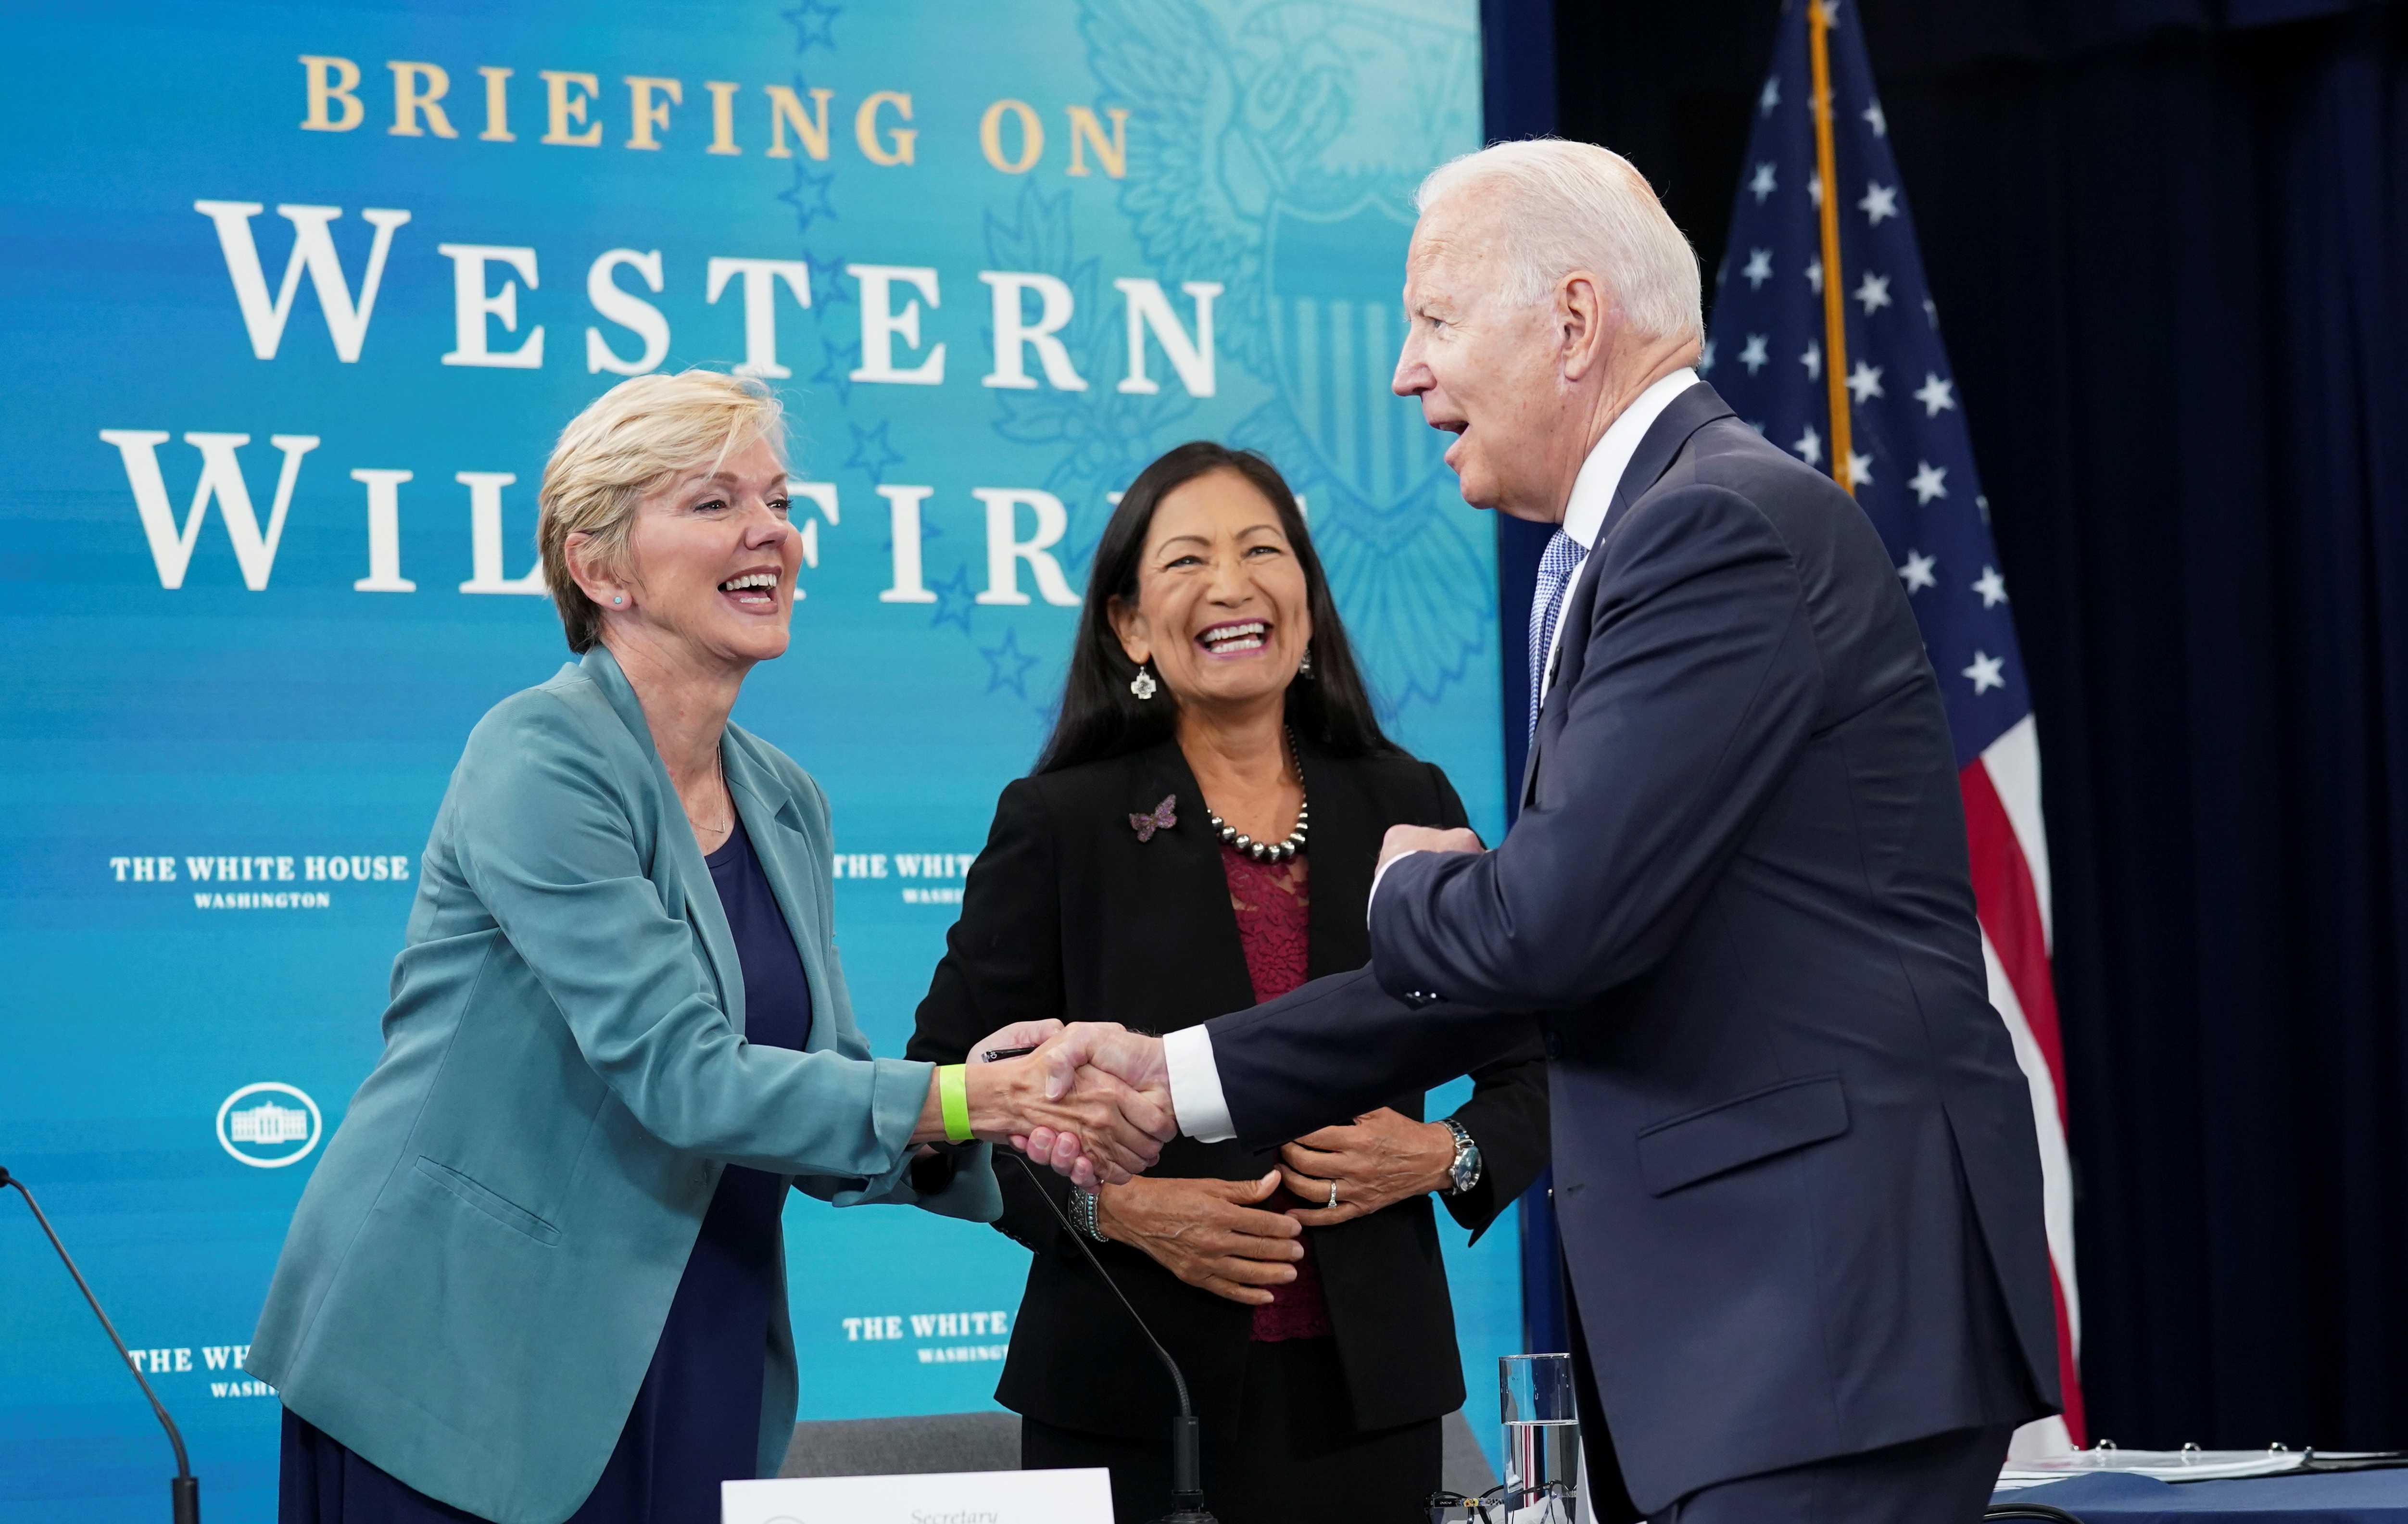 U.S. President Joe Biden shakes hands with Energy Secretary Jennifer Granholm next to Interior Secretary Deb Haaland as he arrives for a meeting with cabinet officials, governors, and private sector partners to discuss preparedness of Western states to heat, drought and wildfires this season, at the White House in Washington, U.S. June 30, 2021. REUTERS/Kevin Lamarque